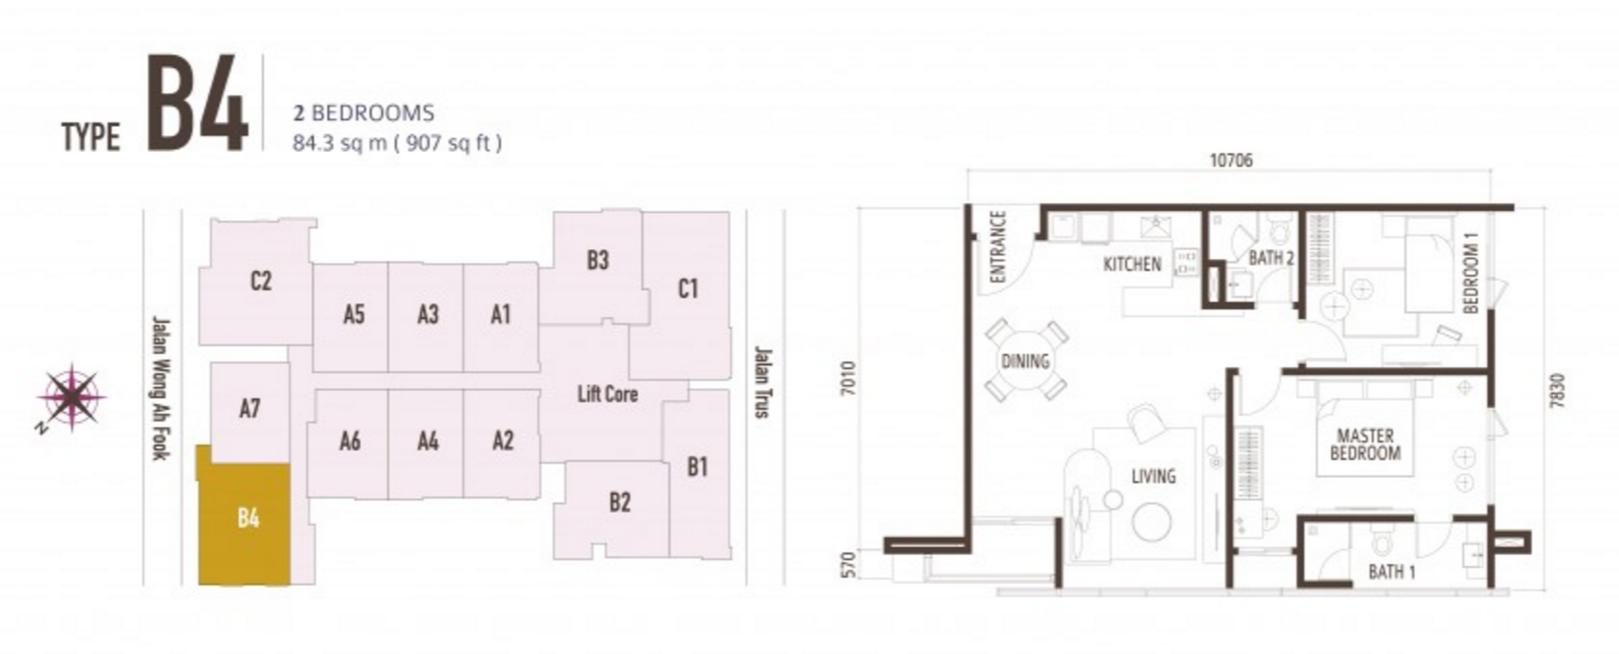 FloorPlan 2 Bedroom Type B4